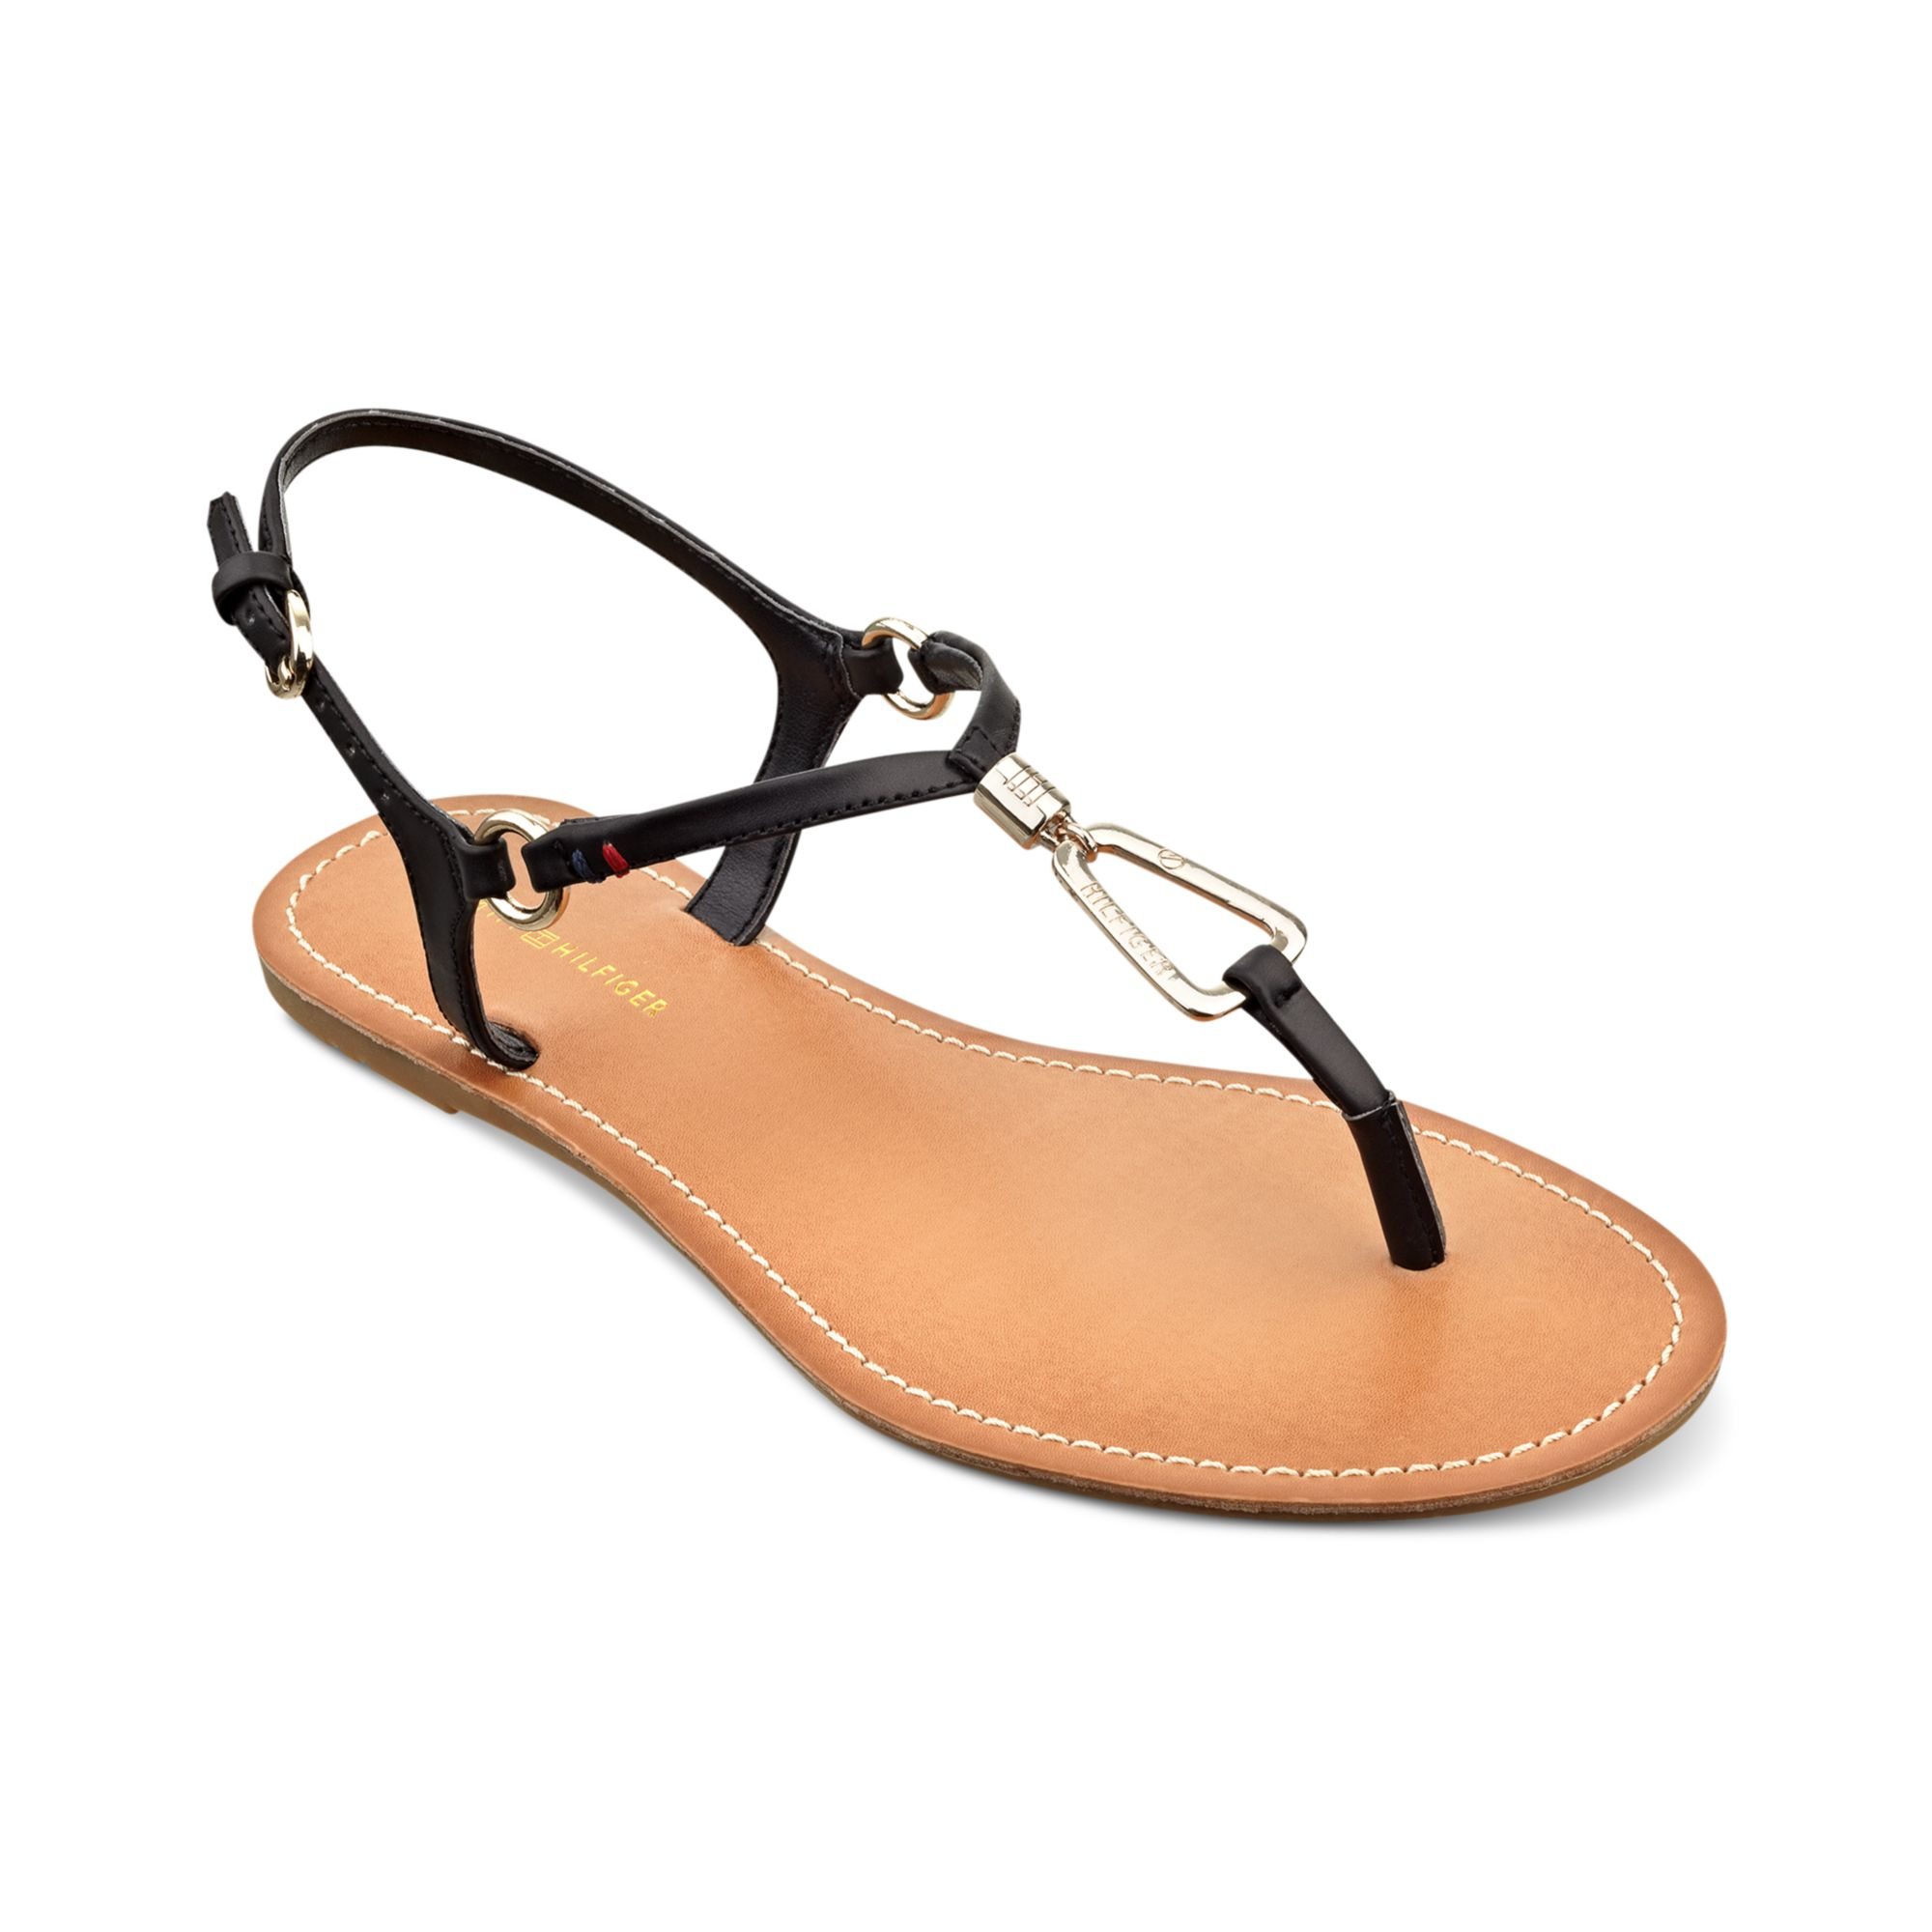 Tommy Hilfiger strappy flat sandals buy cheap discount xyYK6